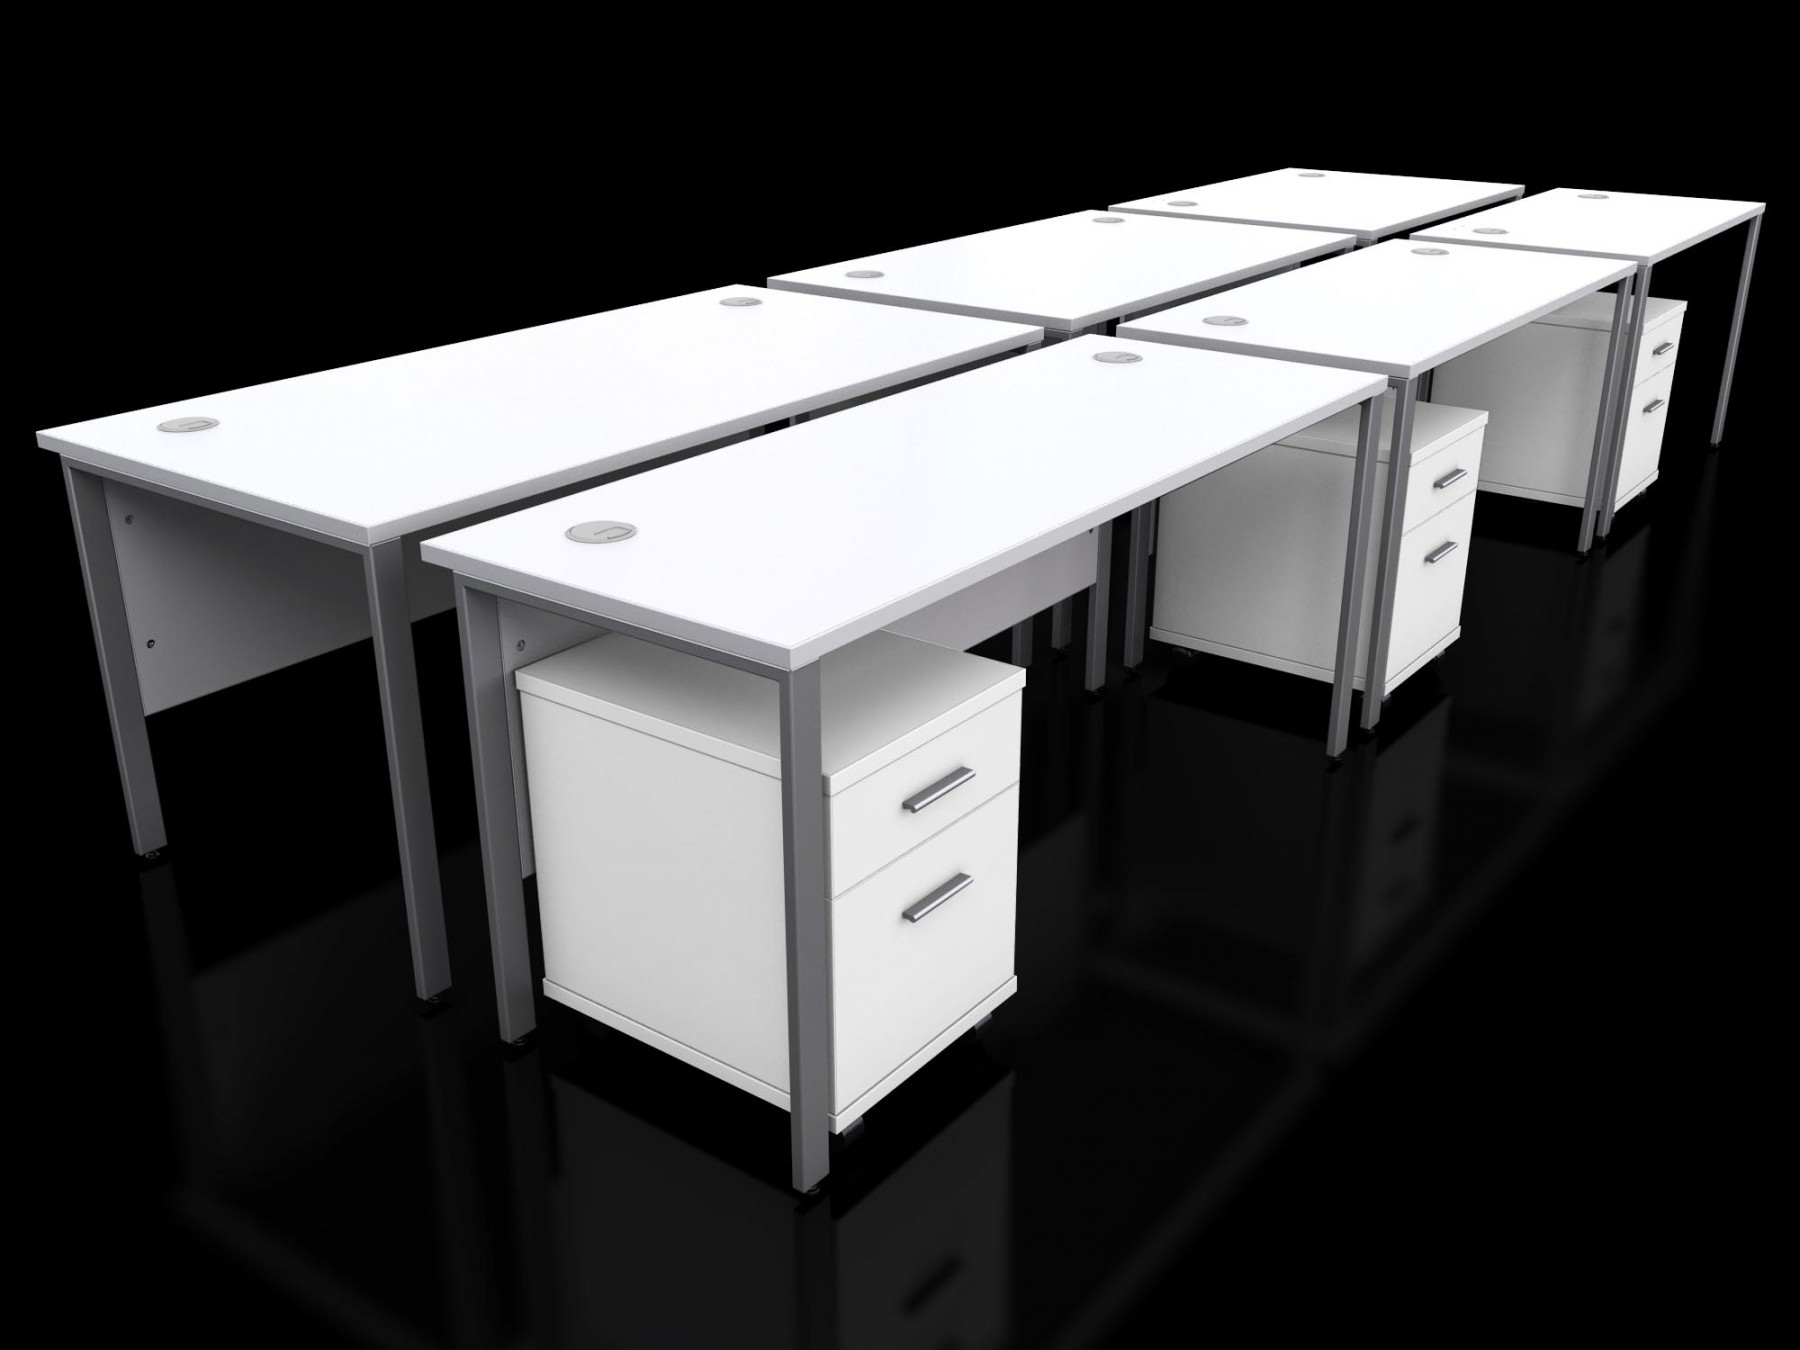 Pod Of 6 Icarus White Bench Desks And Pedestals Rapid